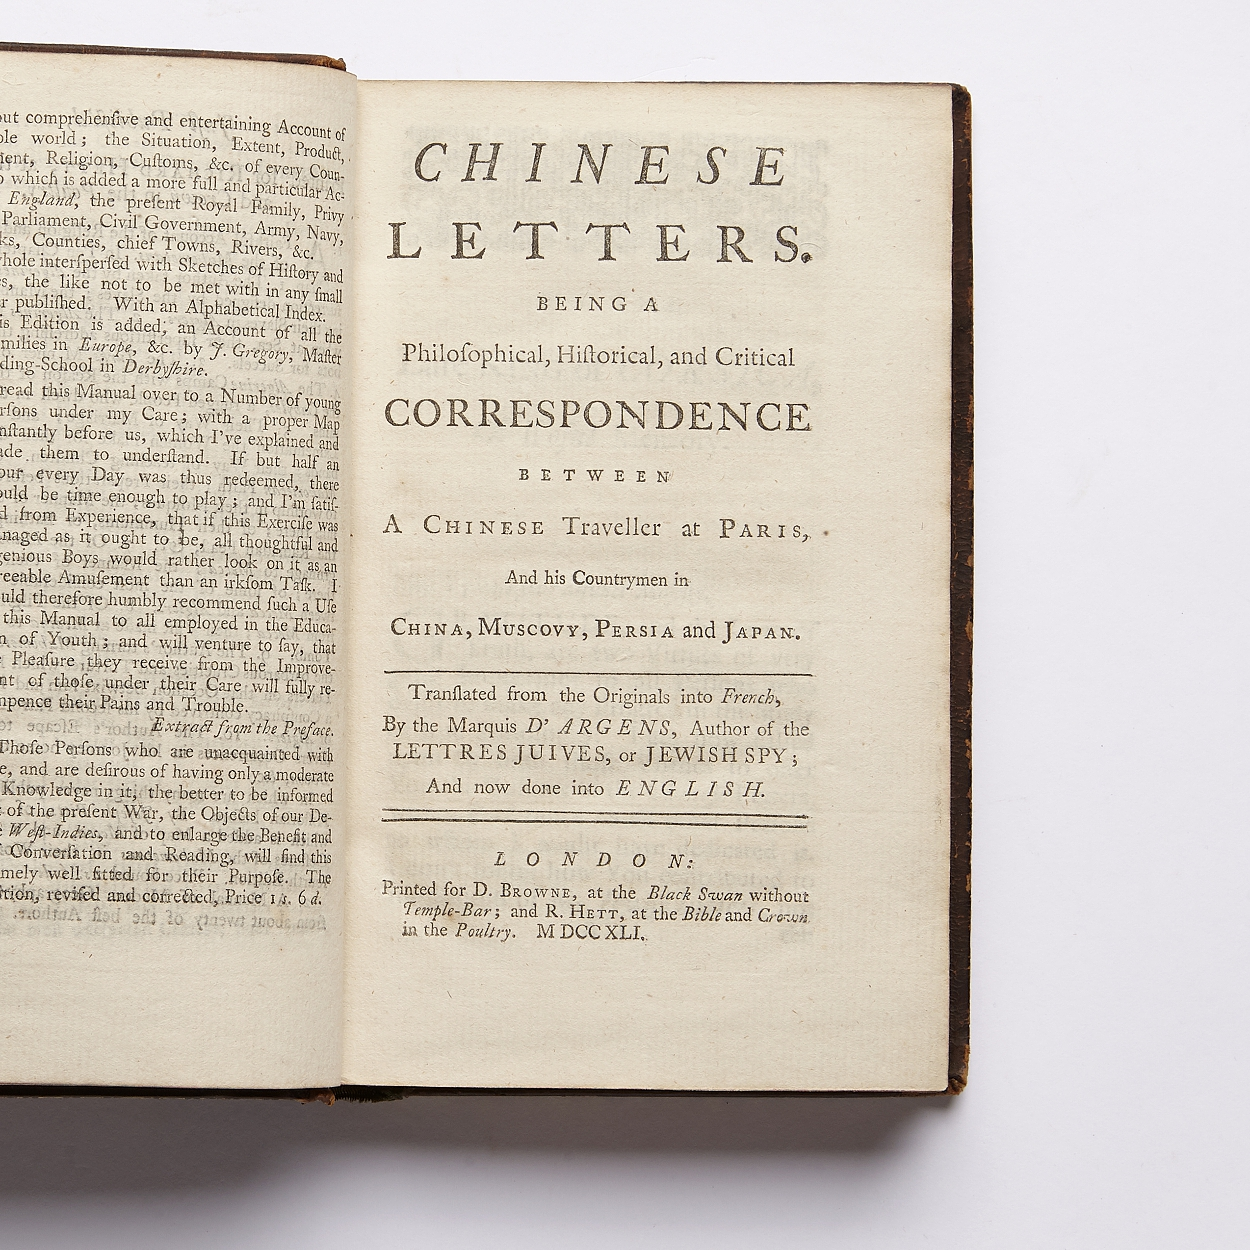 Argens Chinese Letters 1741